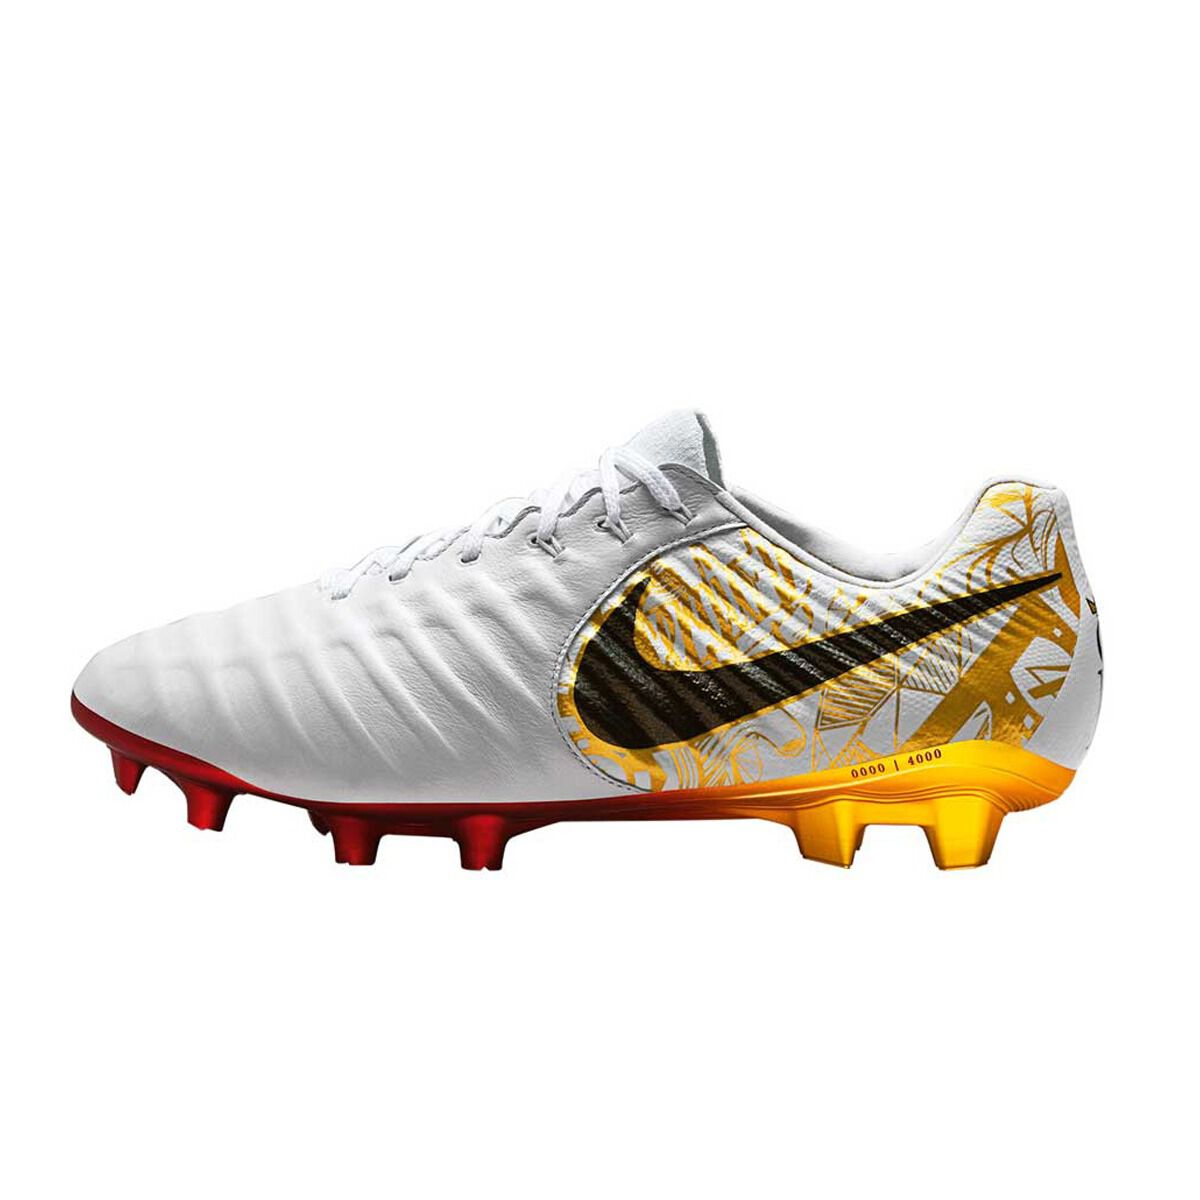 96476755b623 ... spain nike tiempo legend vii ramos special edition mens football boots  white gold us 9.5 adult